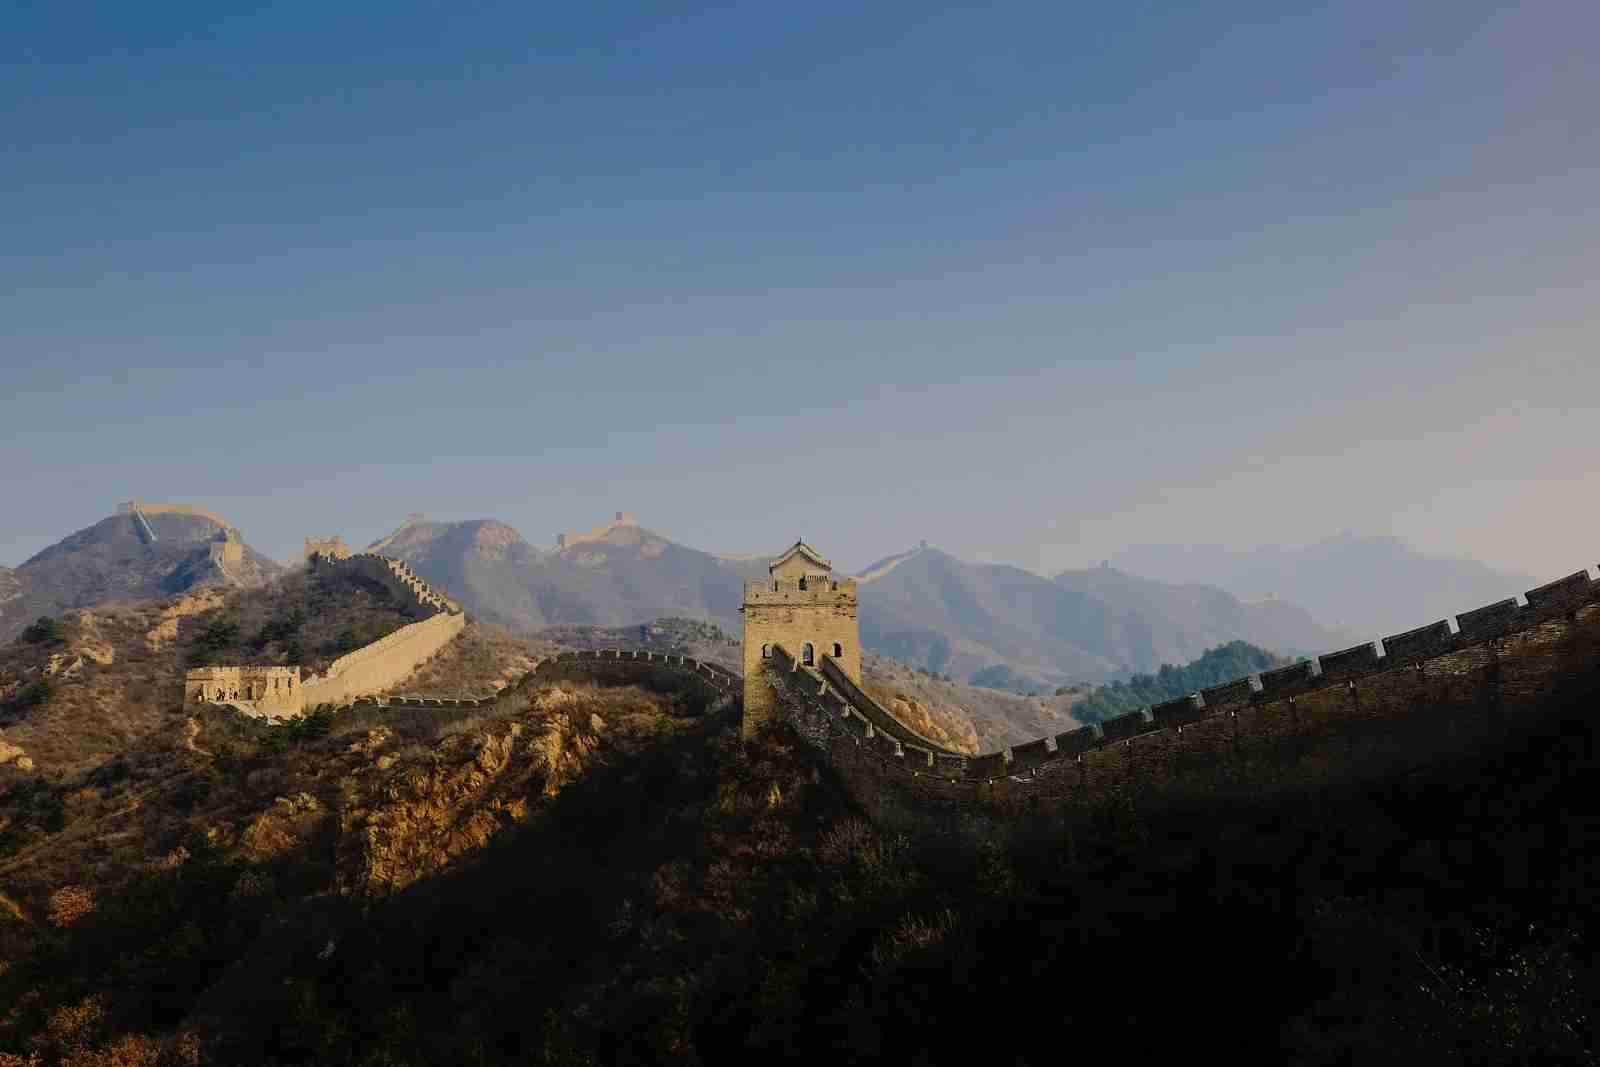 The Great Wall of China. (Photo by William Christen / Unsplash)